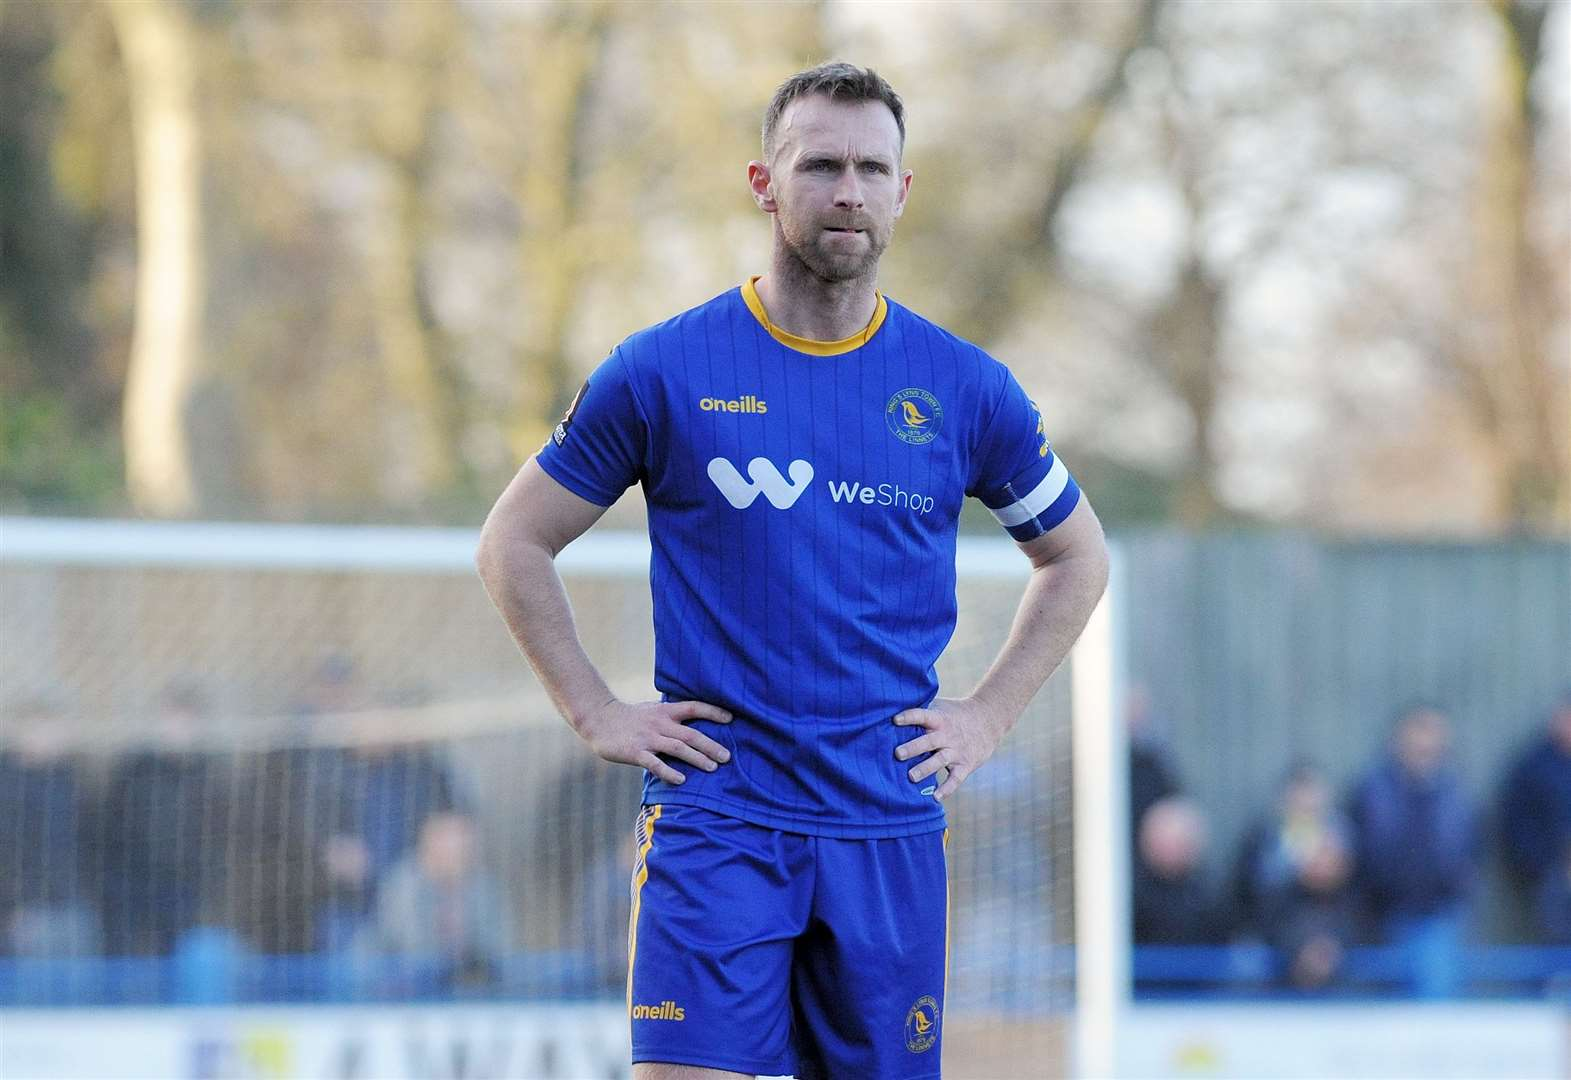 """You can't let any of these distractions affect the squad. We'll train this week and prepare for Saturday. It's another game we want to win."" - Linnets midfielder Ryan Jarvis on weekend clash against Bradford PA"